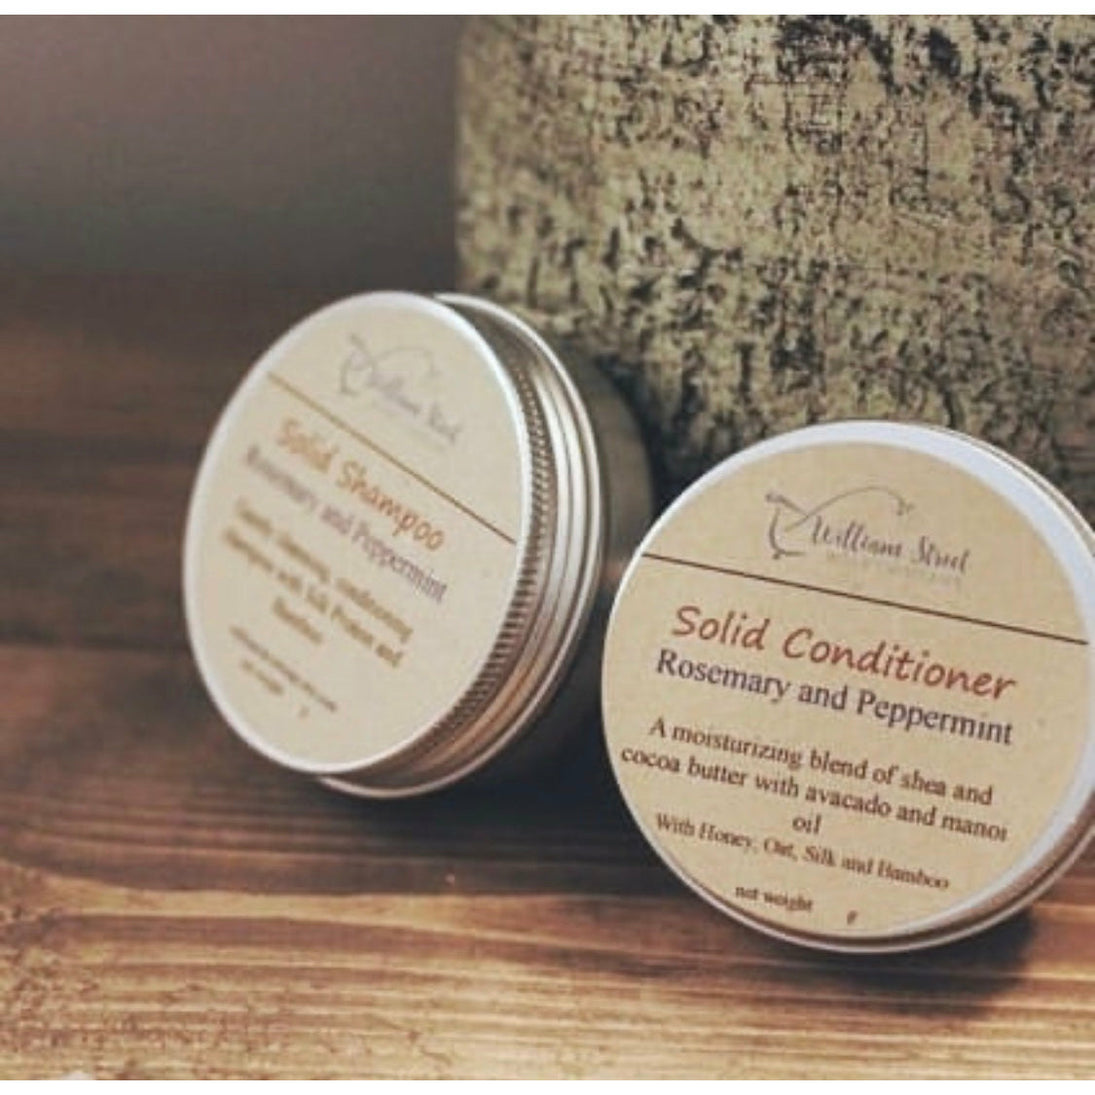 Shampoo and Conditioner Bars in Travel Tins